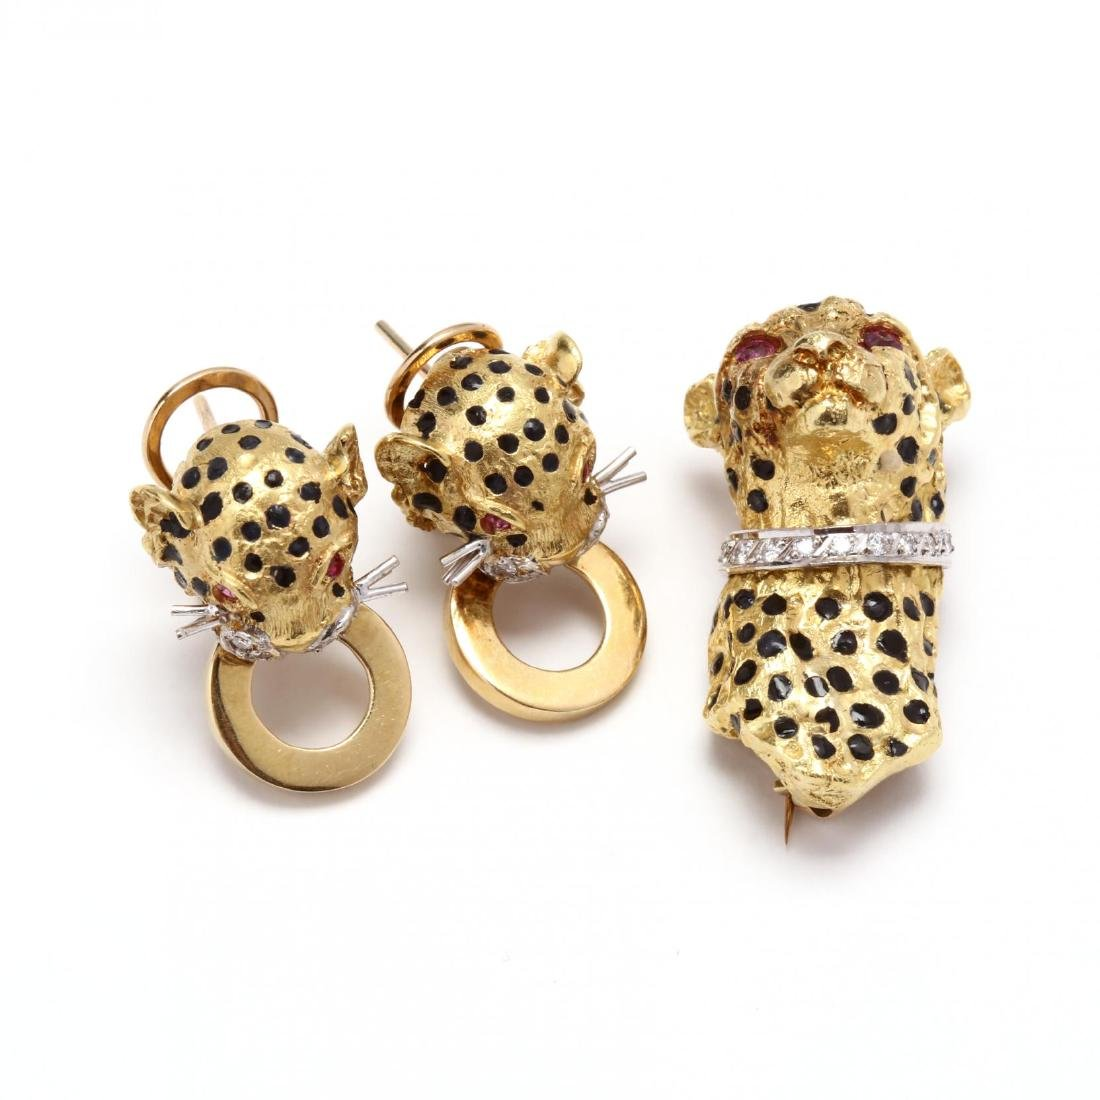 18KT Gold, Enamel, and Gem Set Cheetah Earrings and